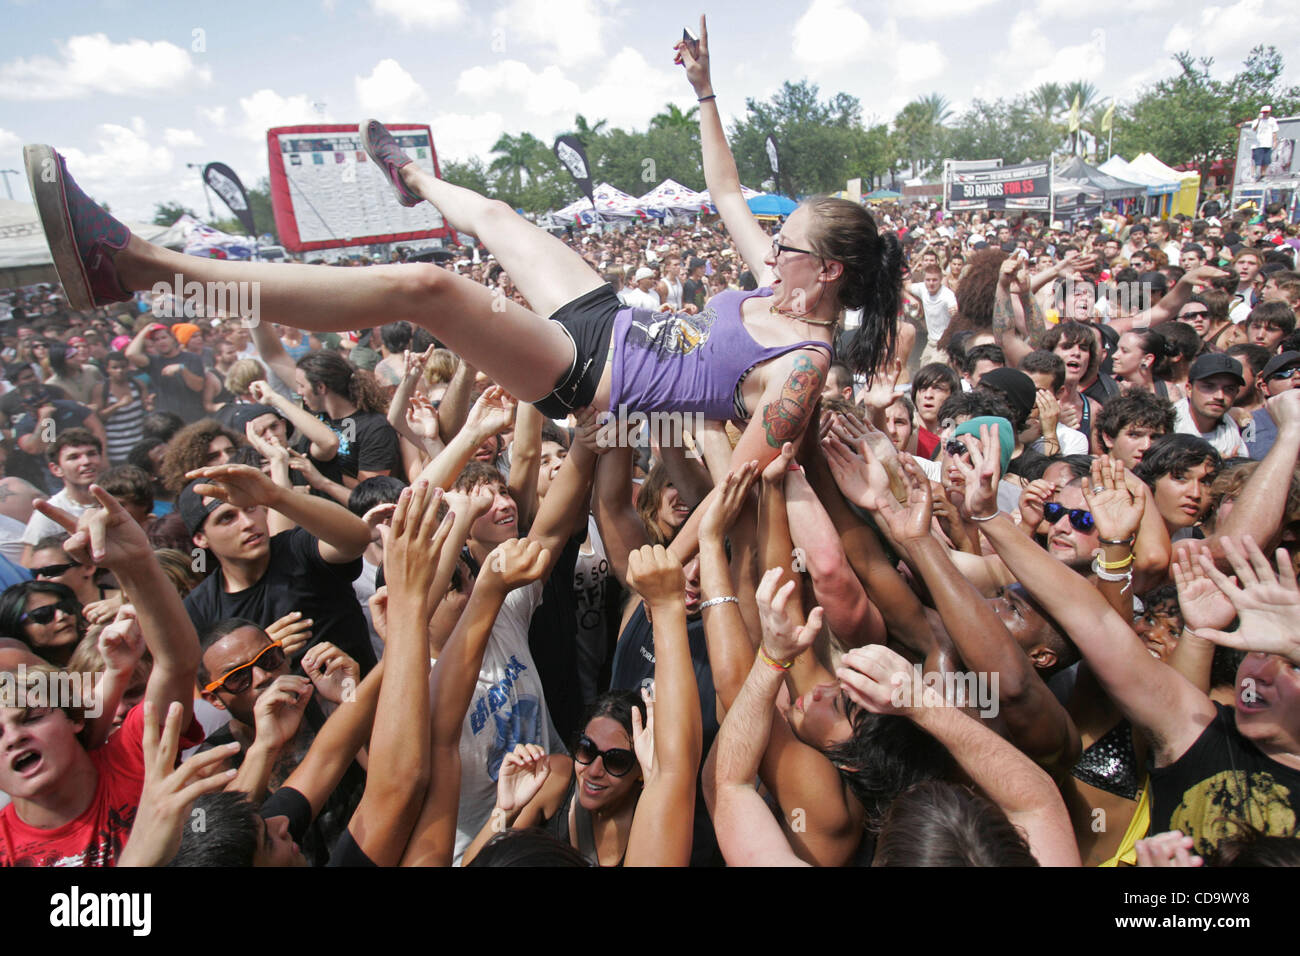 July 24, 2010 - West Palm Beach, Florida, US - A fan successfully crowd surfs to the front of the stage during the - Stock Image